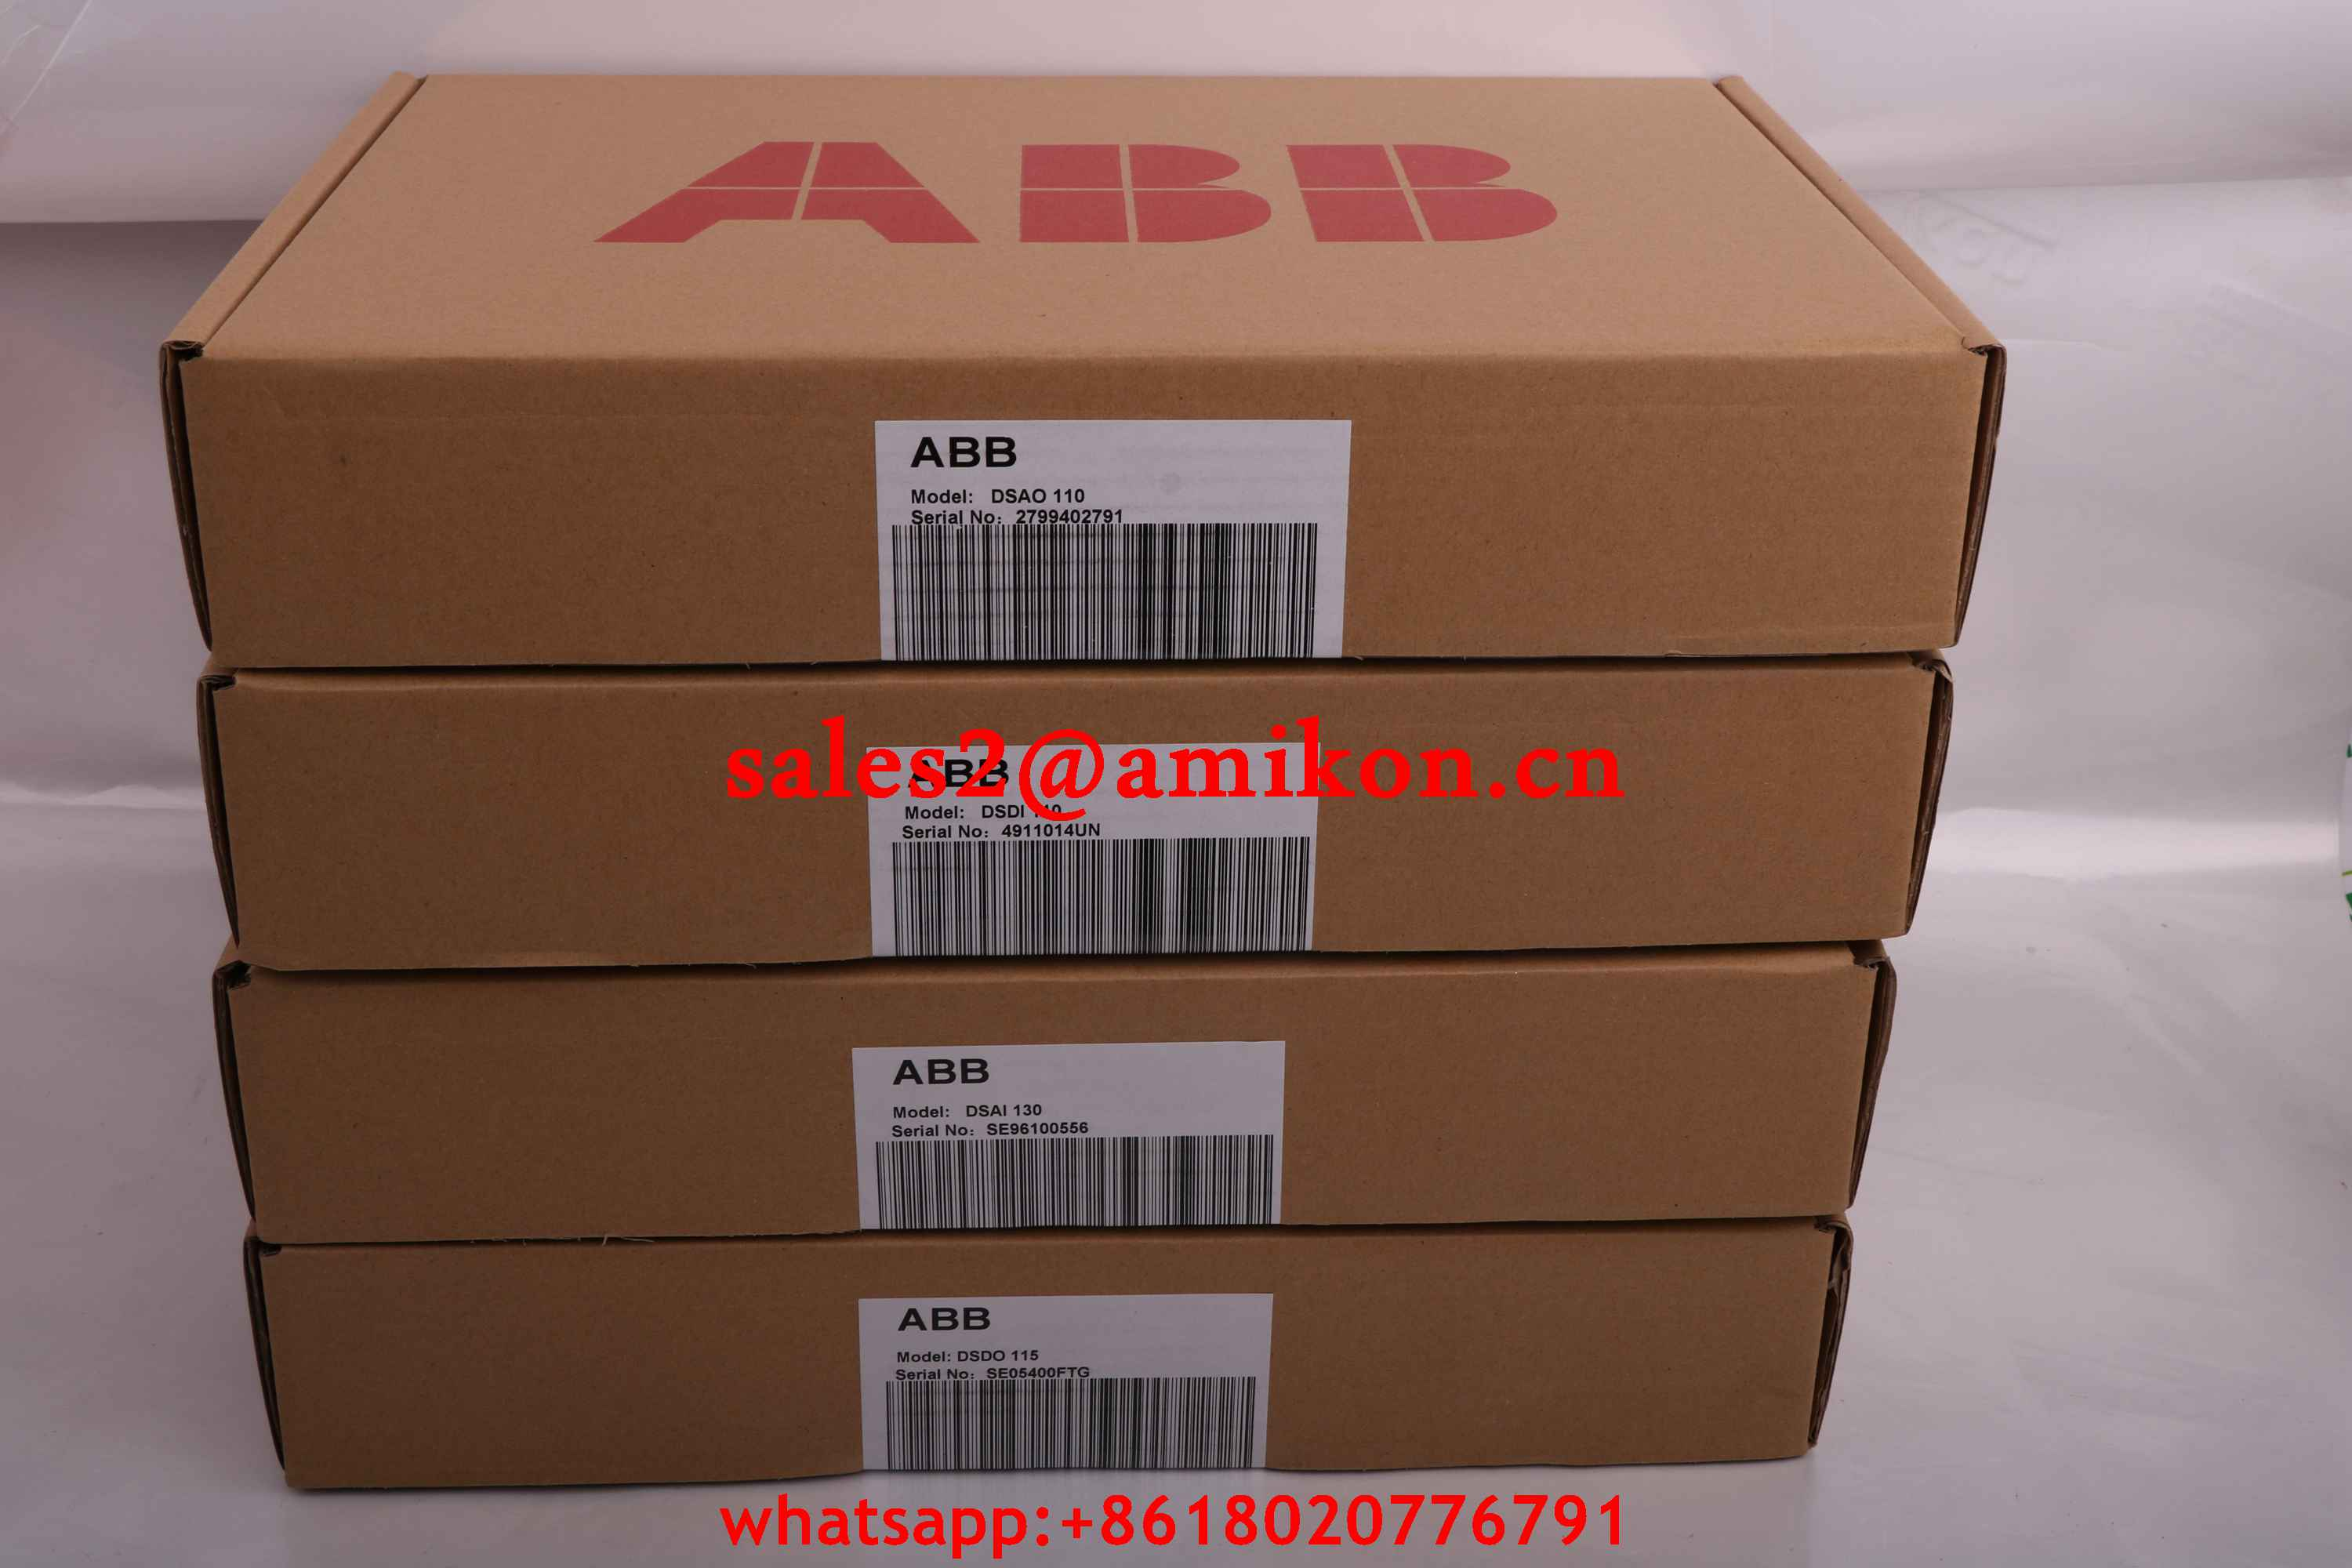 3HAB 2219-1 DSQC316 Main Computer ABB | Robot spare parts | PLC DCS Parts T/T 100% New In stock